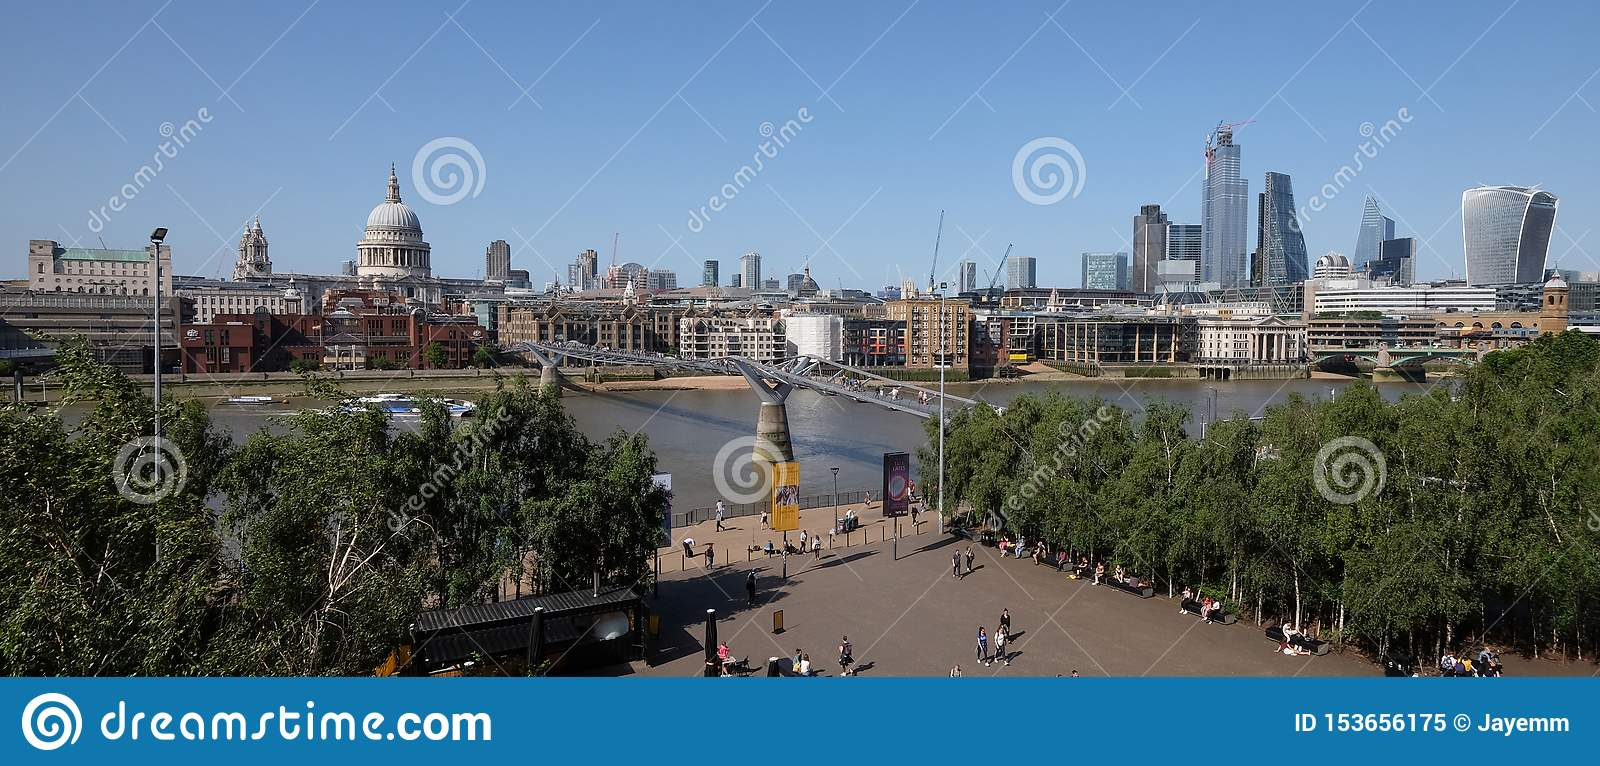 City of London, United Kingdom 6th July 2019: London skyline panorama seen from south bank